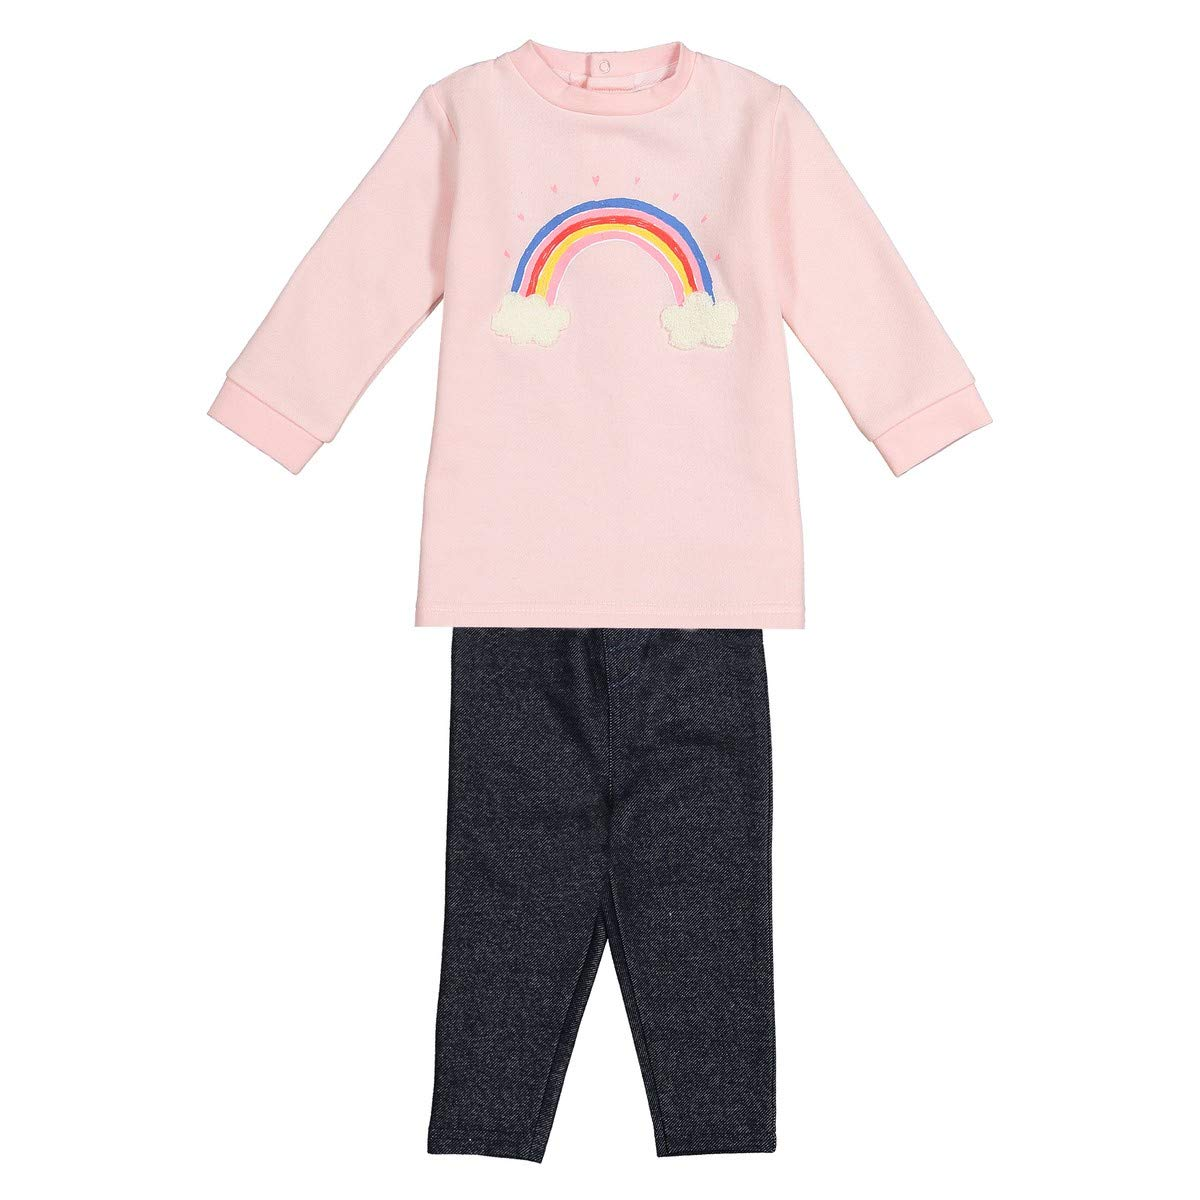 23 in. 1 Month-3 Years Pink Size 3 Months La Redoute Collections Big Girls Sweatshirt and Leggings Outfit